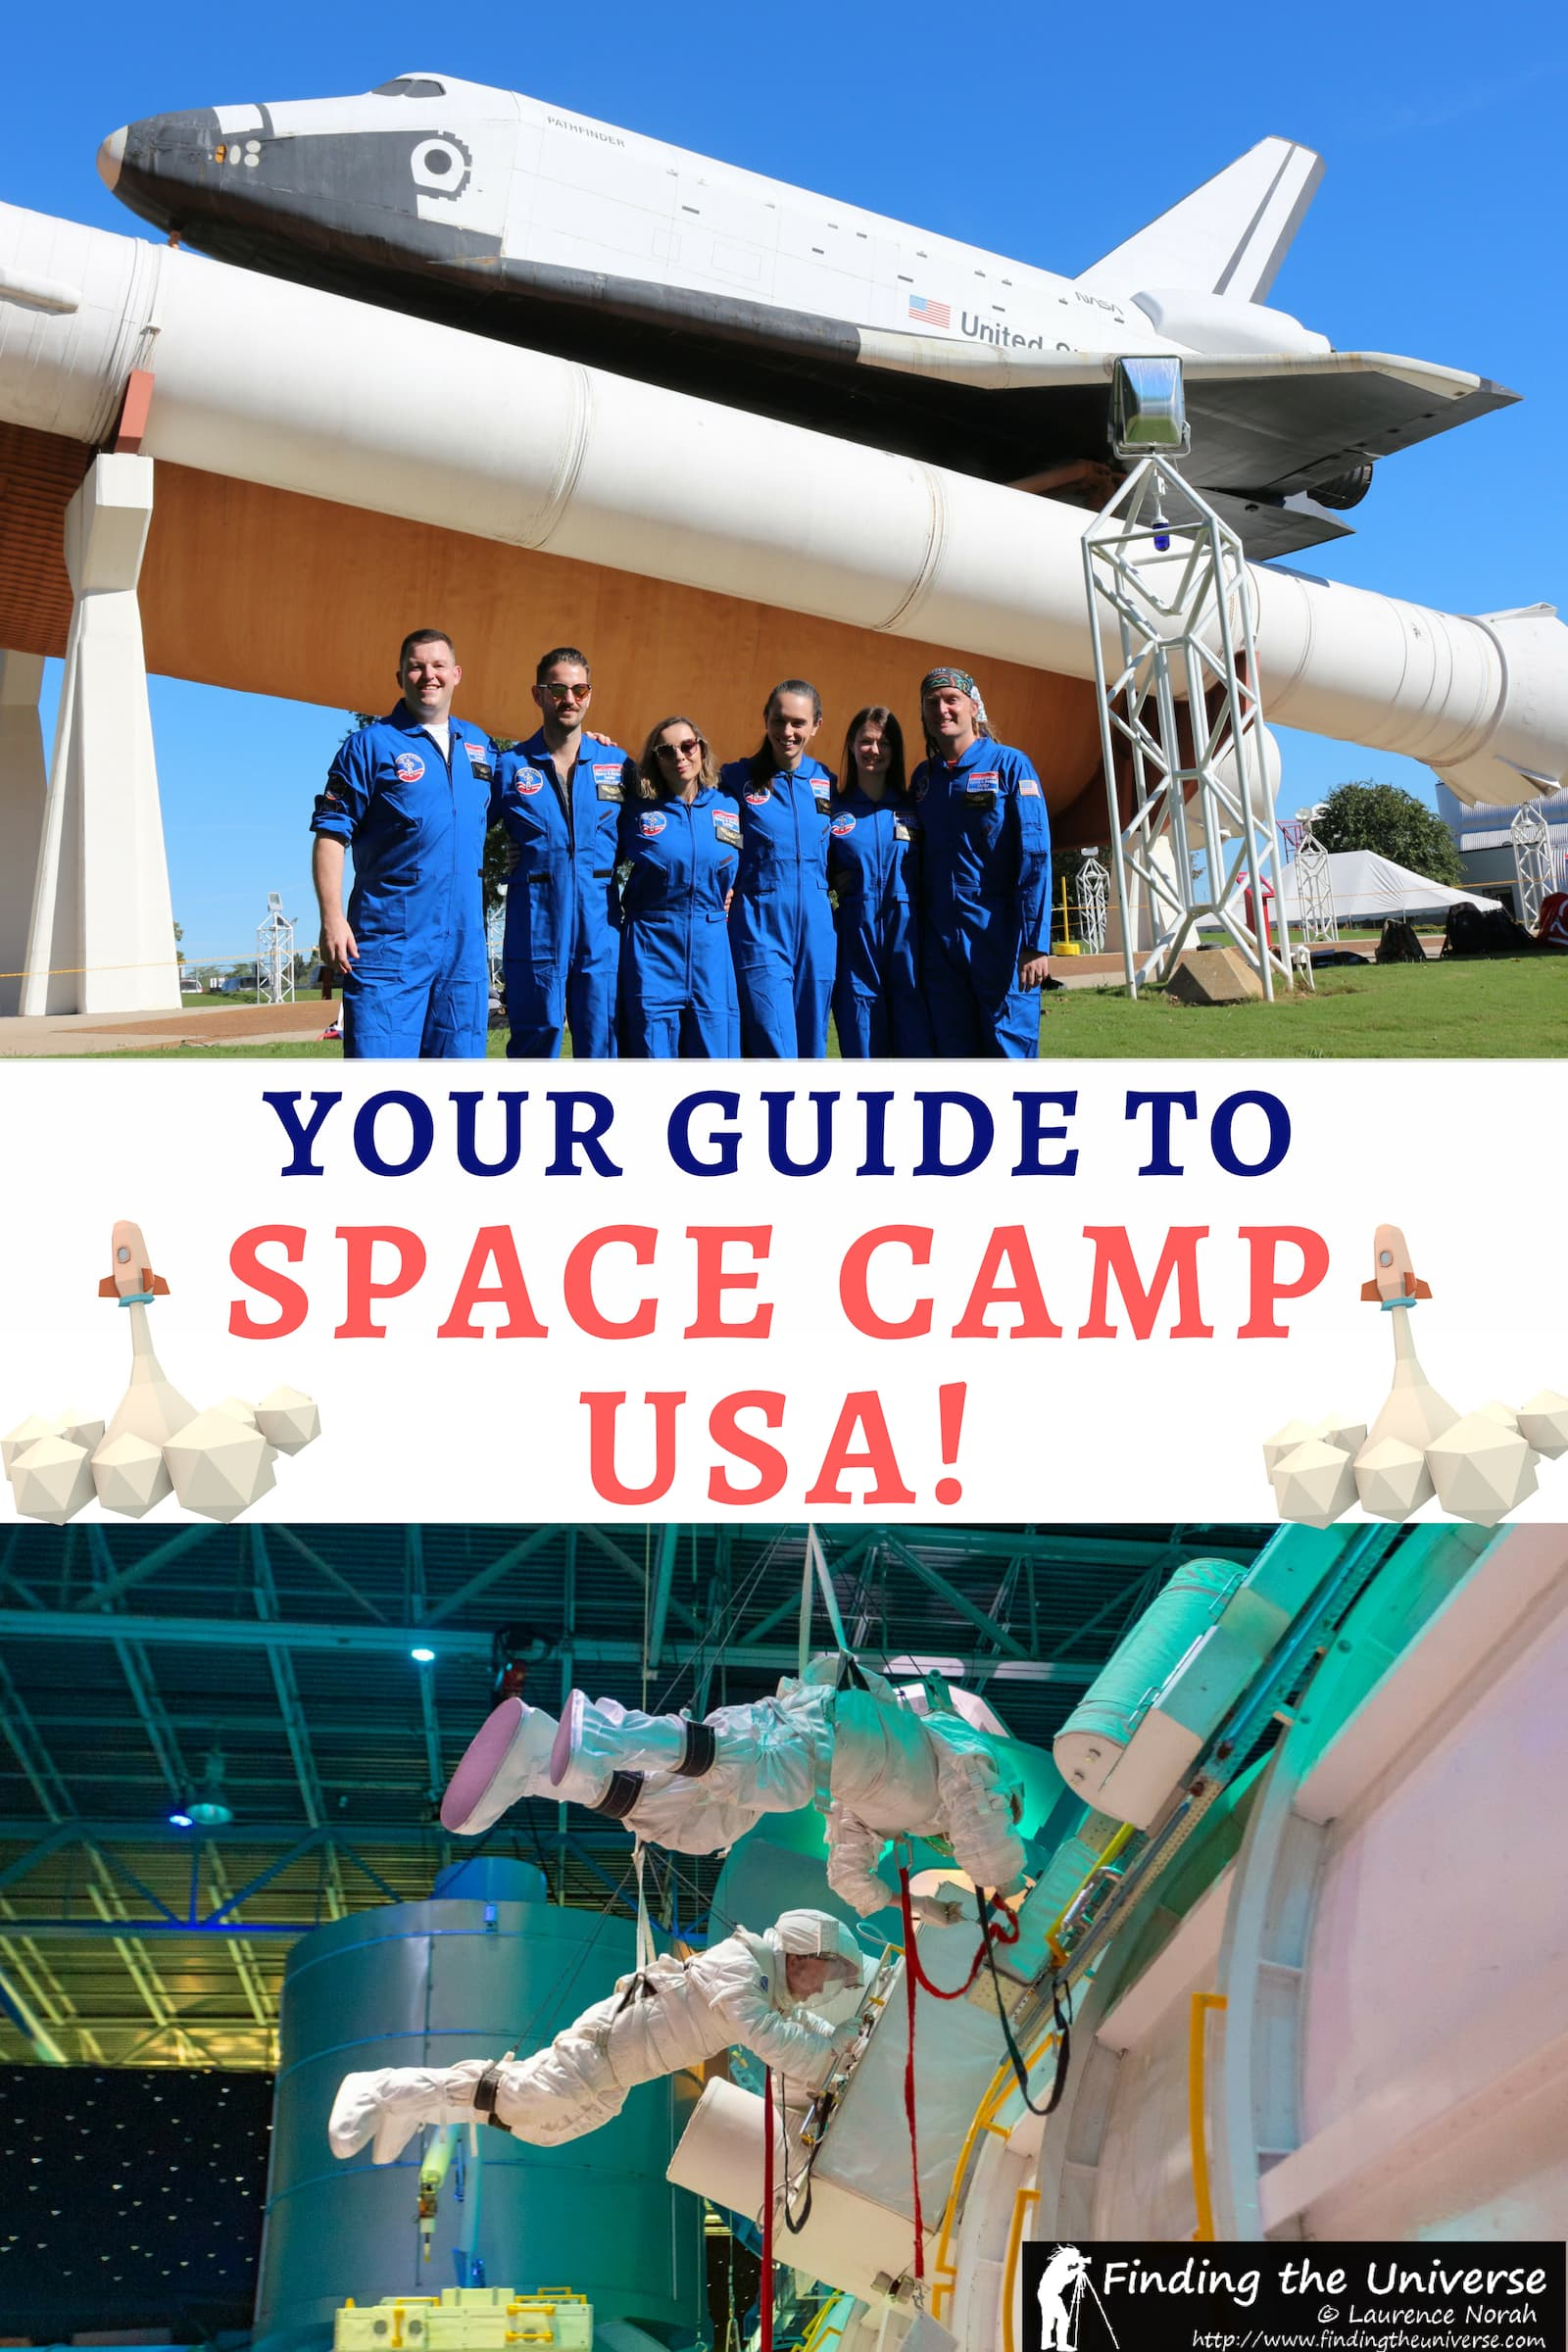 Everything you need to know about visiting Space Camp USA, including what it is, what you get to do, and detailed first hand experiences!